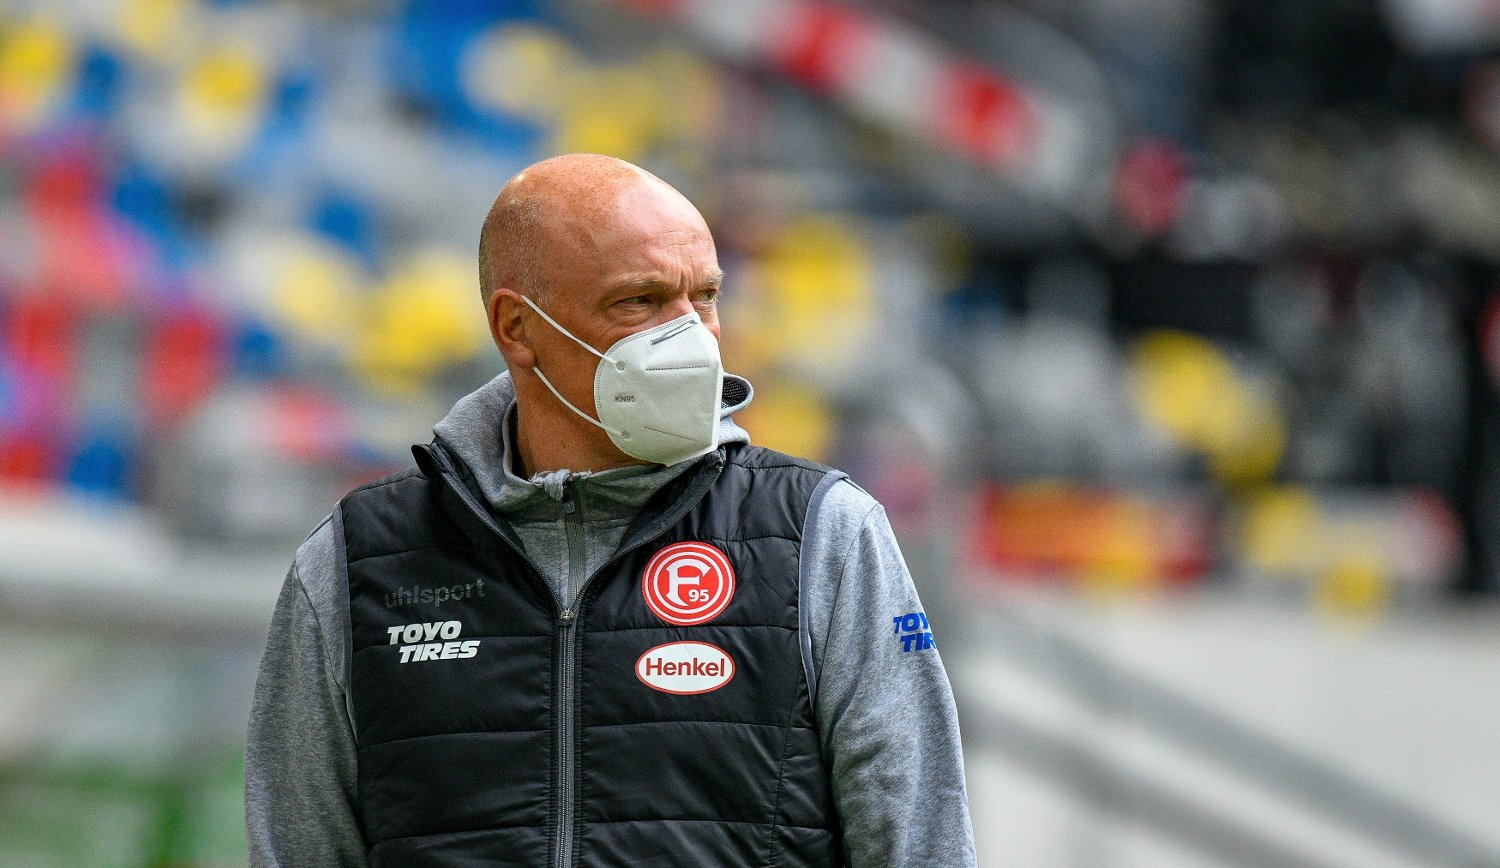 Fortuna Duesseldorf's German head coach Uwe Roesler is seen prior to the Bundesliga soccer match between Duesseldorf and Paderborn in the Merkur Spiel-Arena, Duesseldorf, Germany, Saturday, May 16, 2020. The German Bundesliga becomes the world's first major soccer league to resume after a two-month suspension because of the coronavirus pandemic.